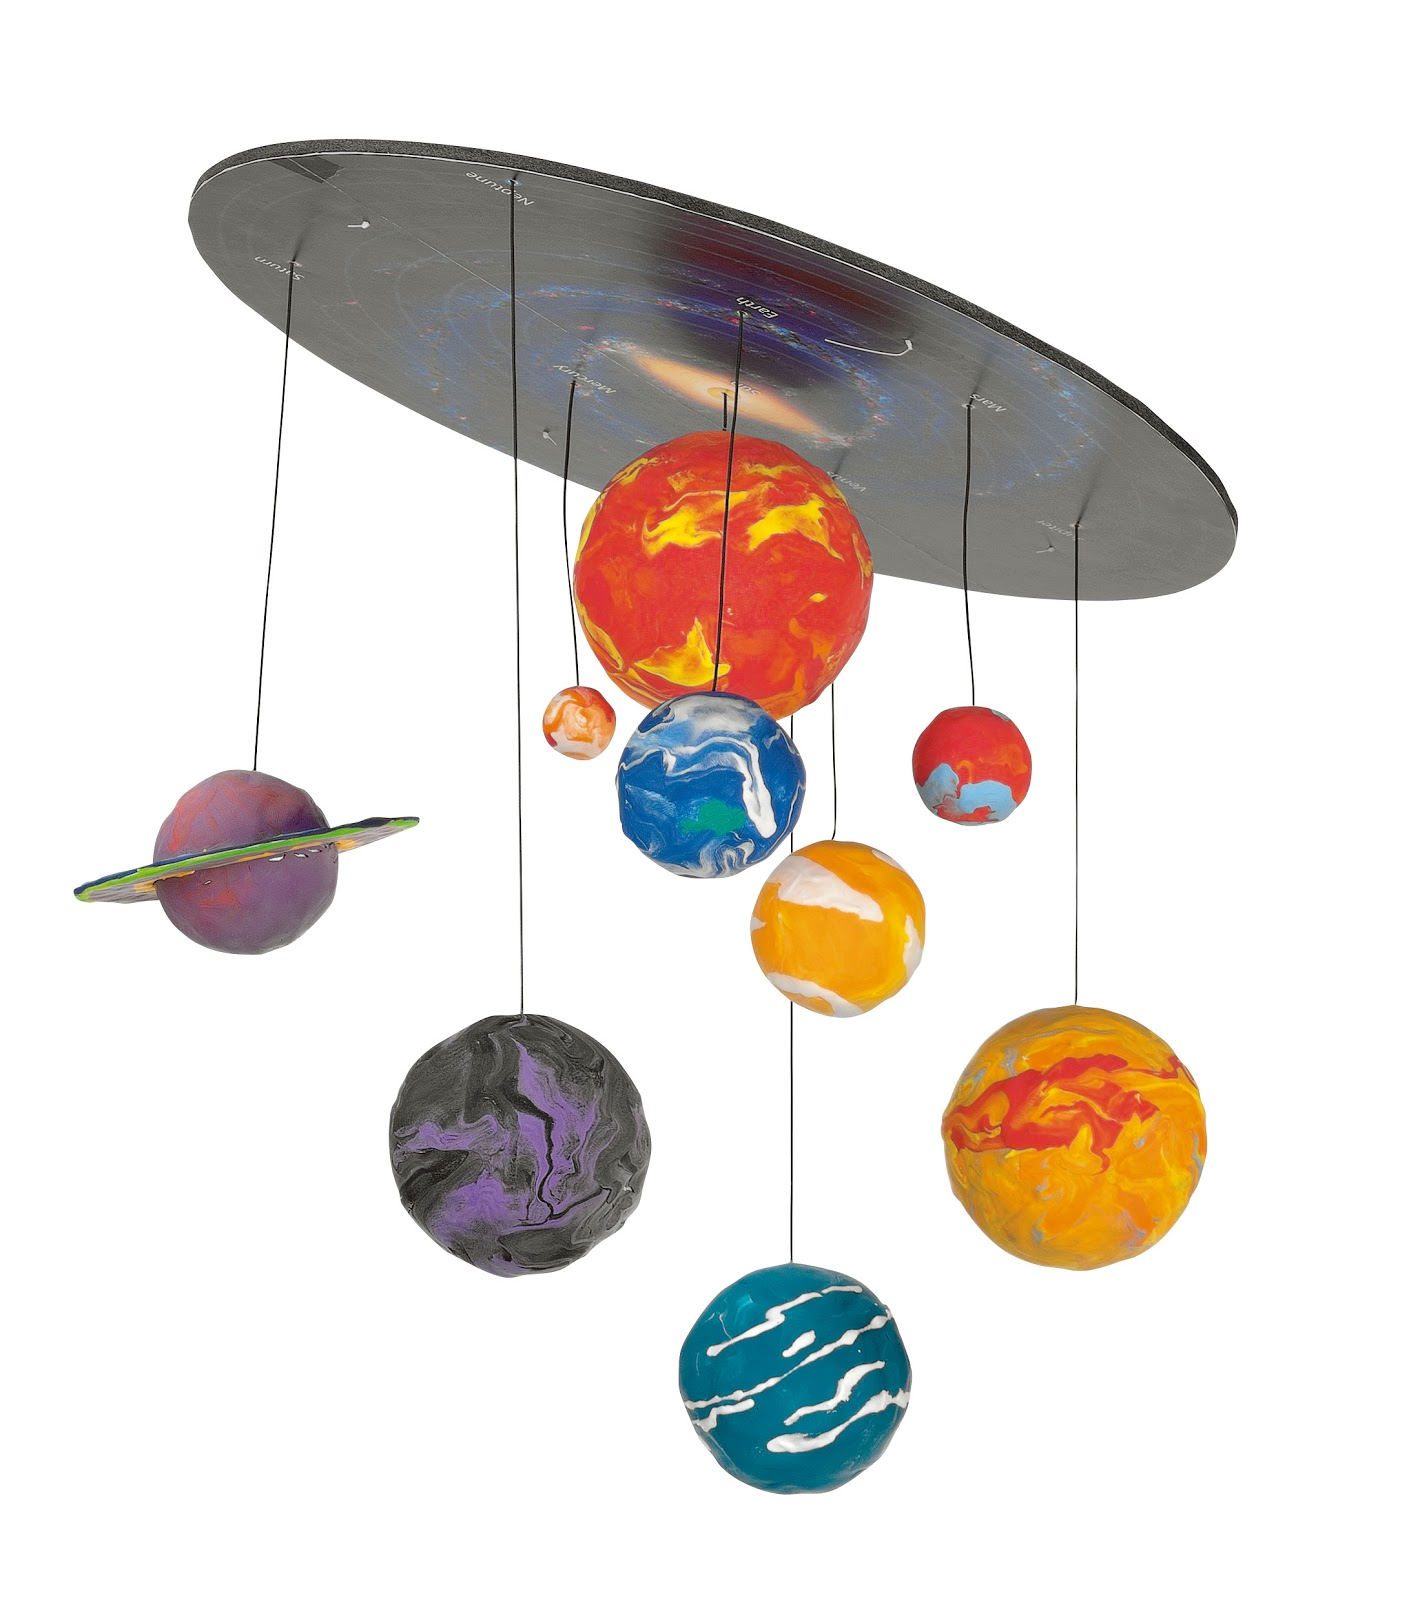 3d solar system model ideas - photo #1